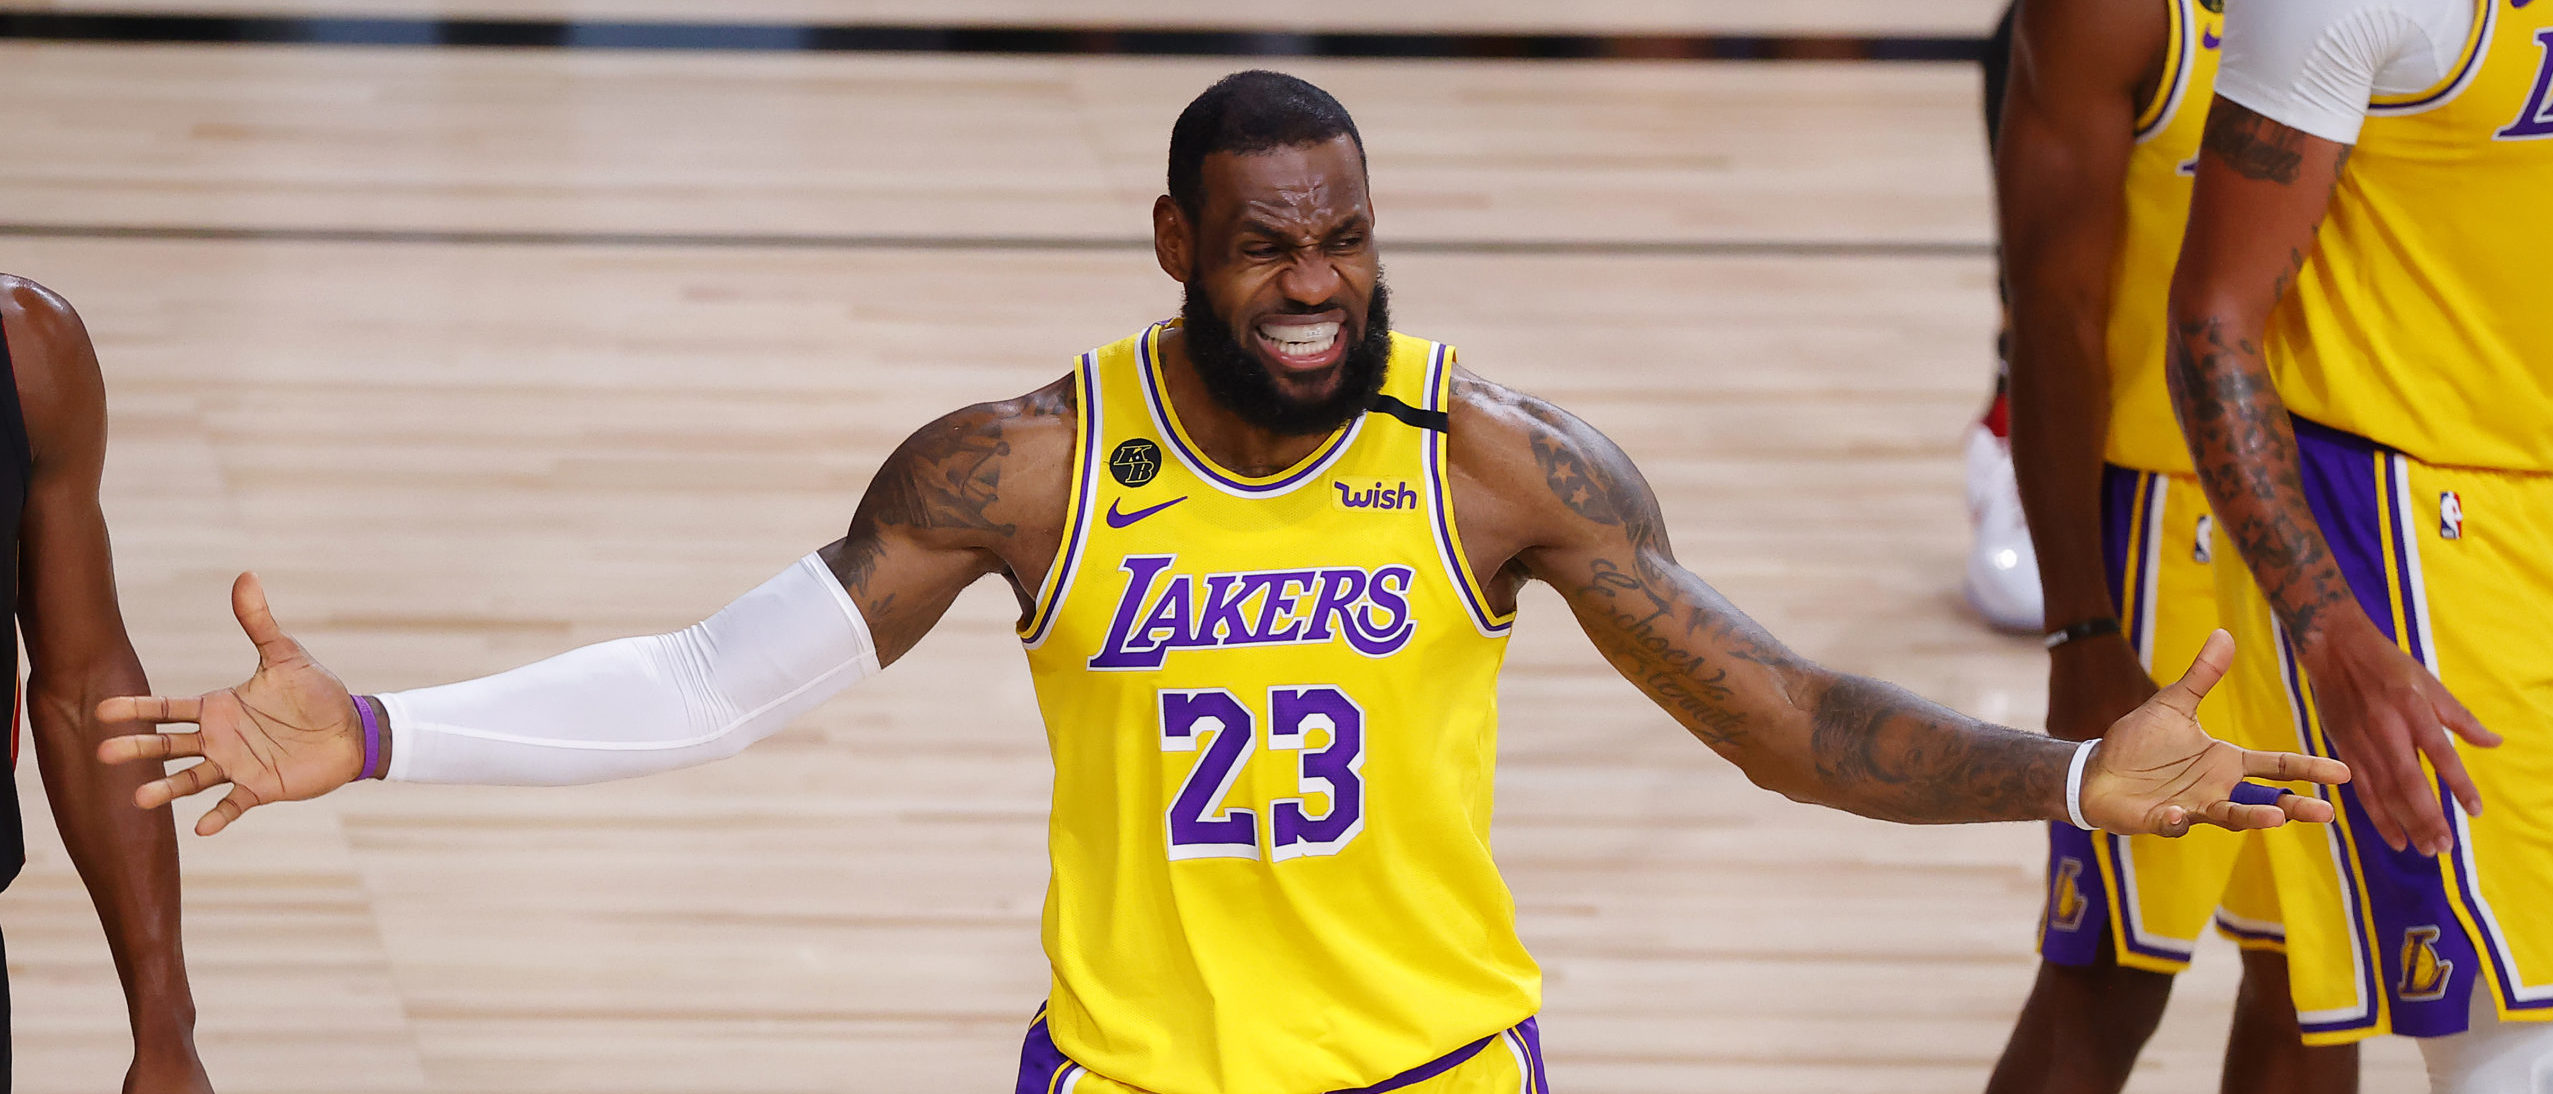 LAKE BUENA VISTA, FLORIDA - OCTOBER 06: LeBron James #23 of the Los Angeles Lakers reacts to a call that was then overturned during the third quarter against the Miami Heat in Game Four of the 2020 NBA Finals at AdventHealth Arena at the ESPN Wide World Of Sports Complex on October 6, 2020 in Lake Buena Vista, Florida. (Photo by Kevin C. Cox/Getty Images)